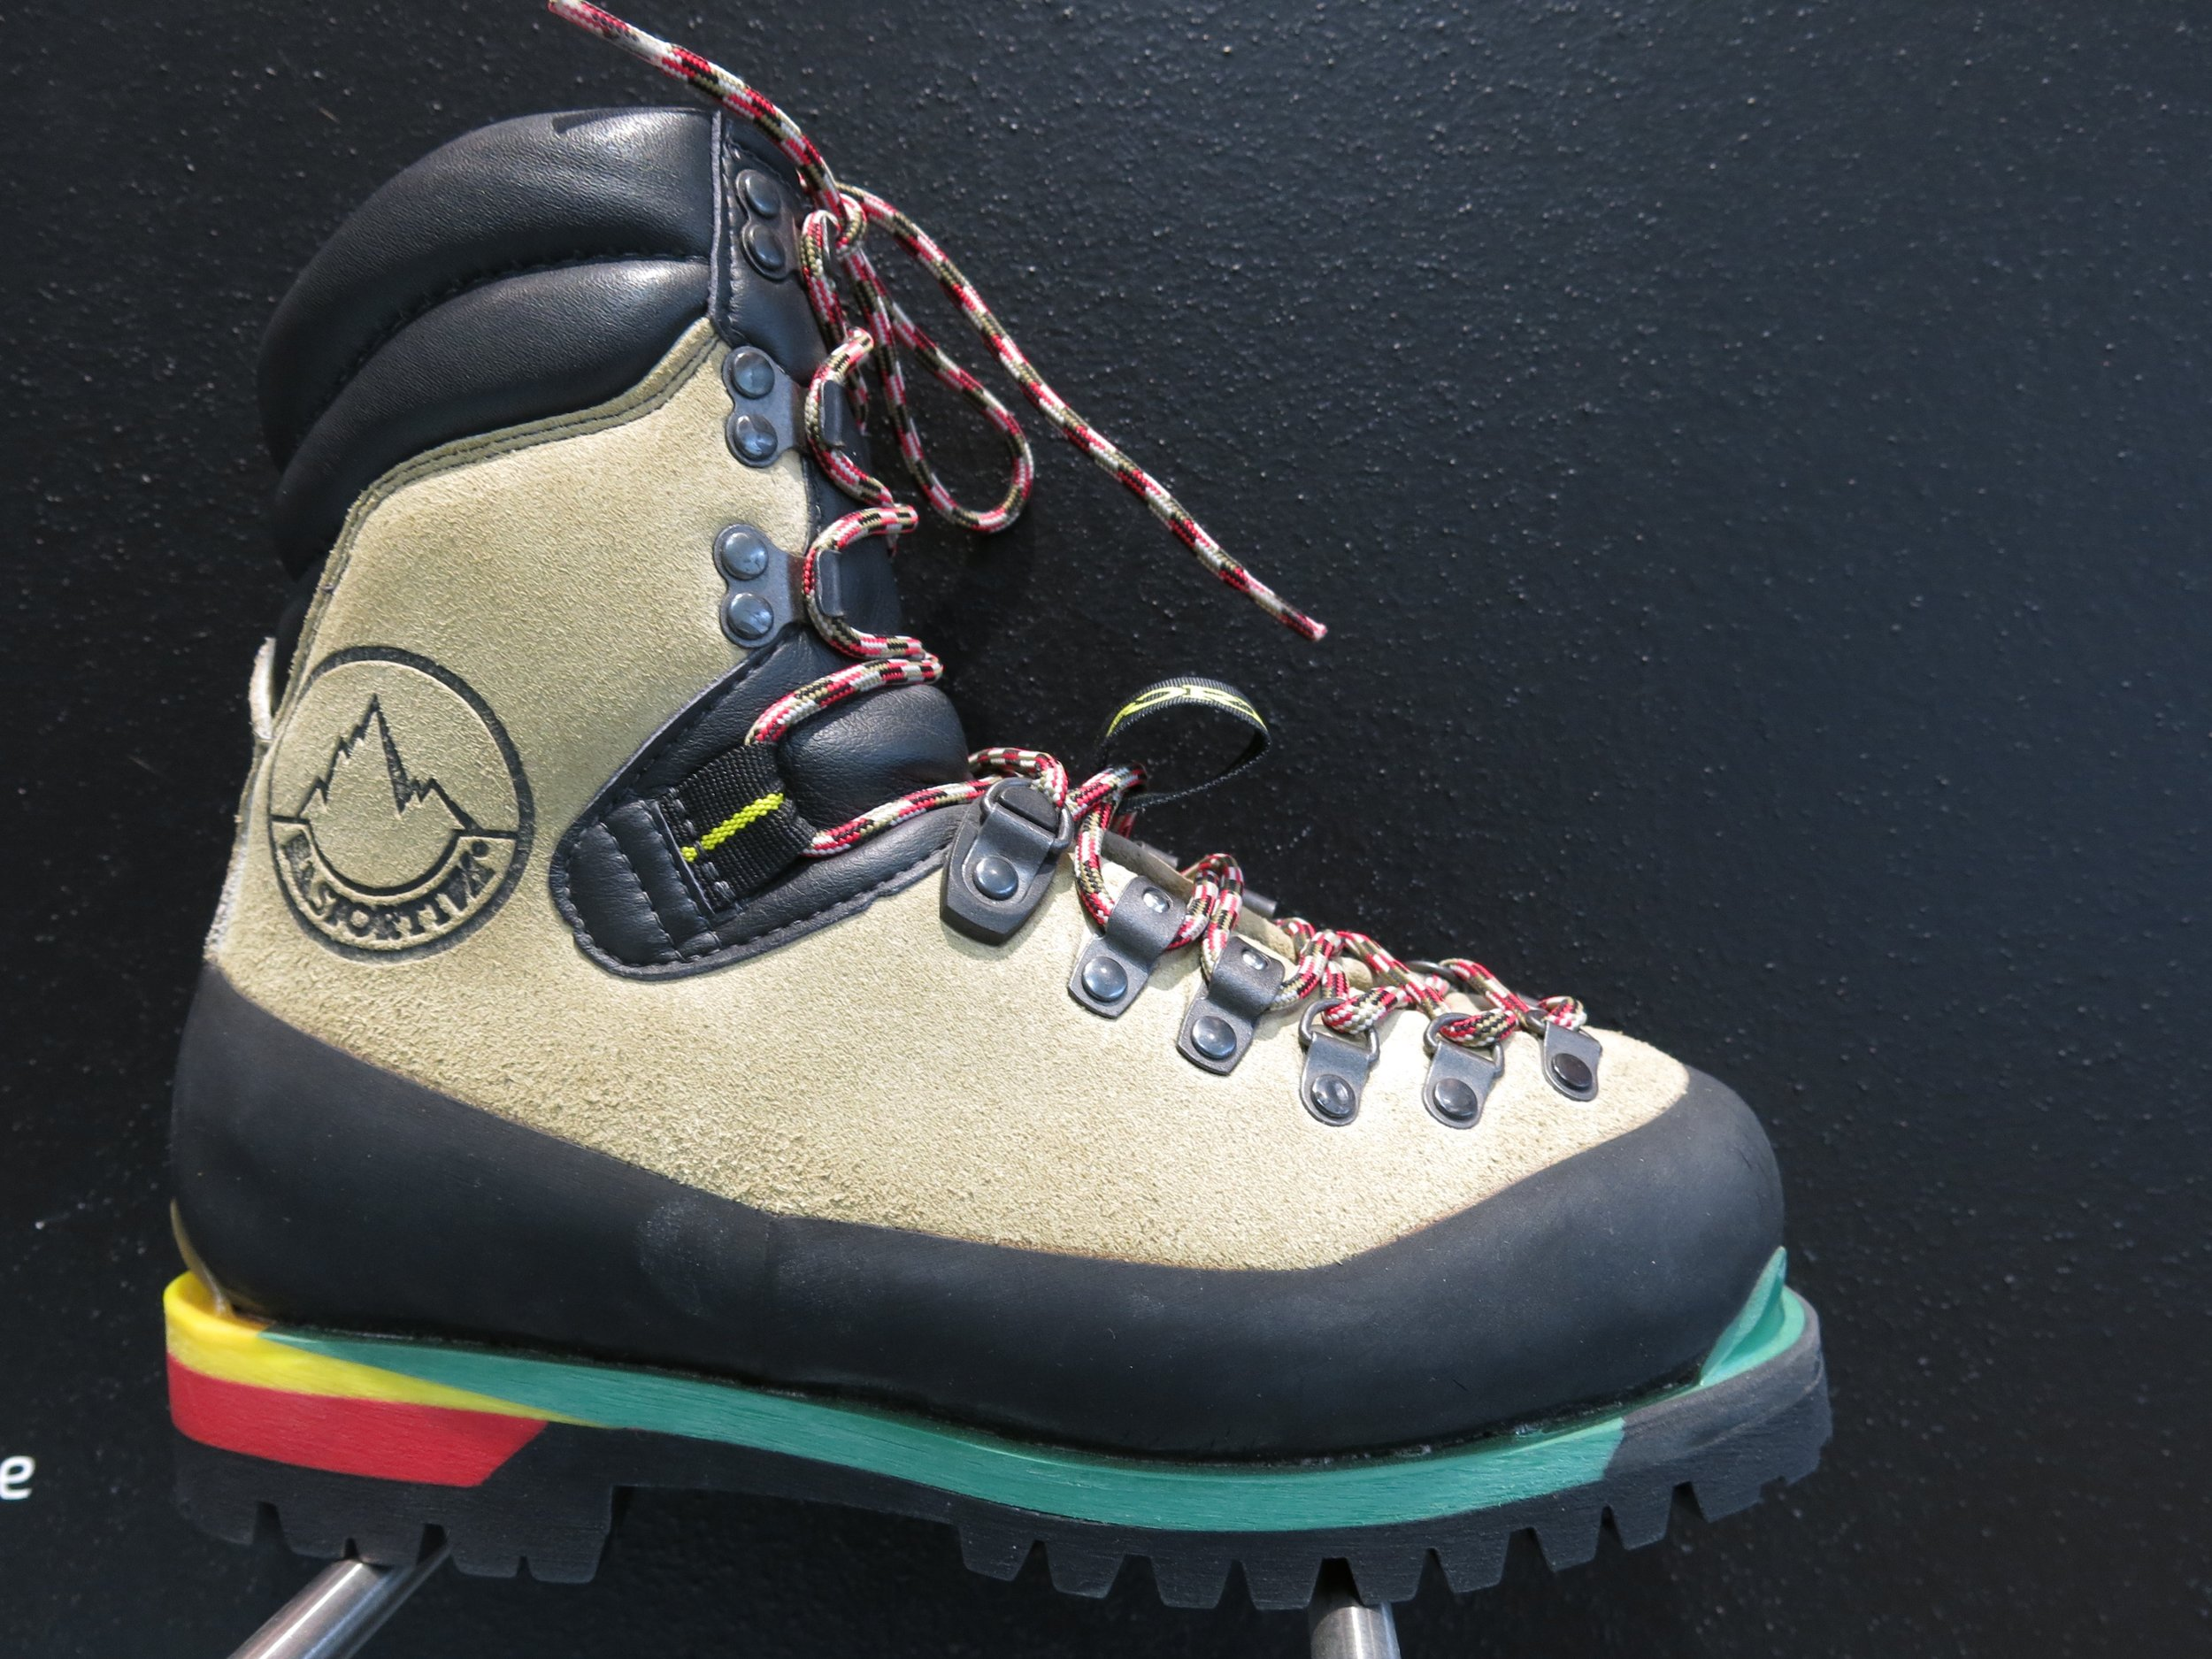 La Sportiva's iconic, Nepal top, the boot that started the 'leather revolution'.